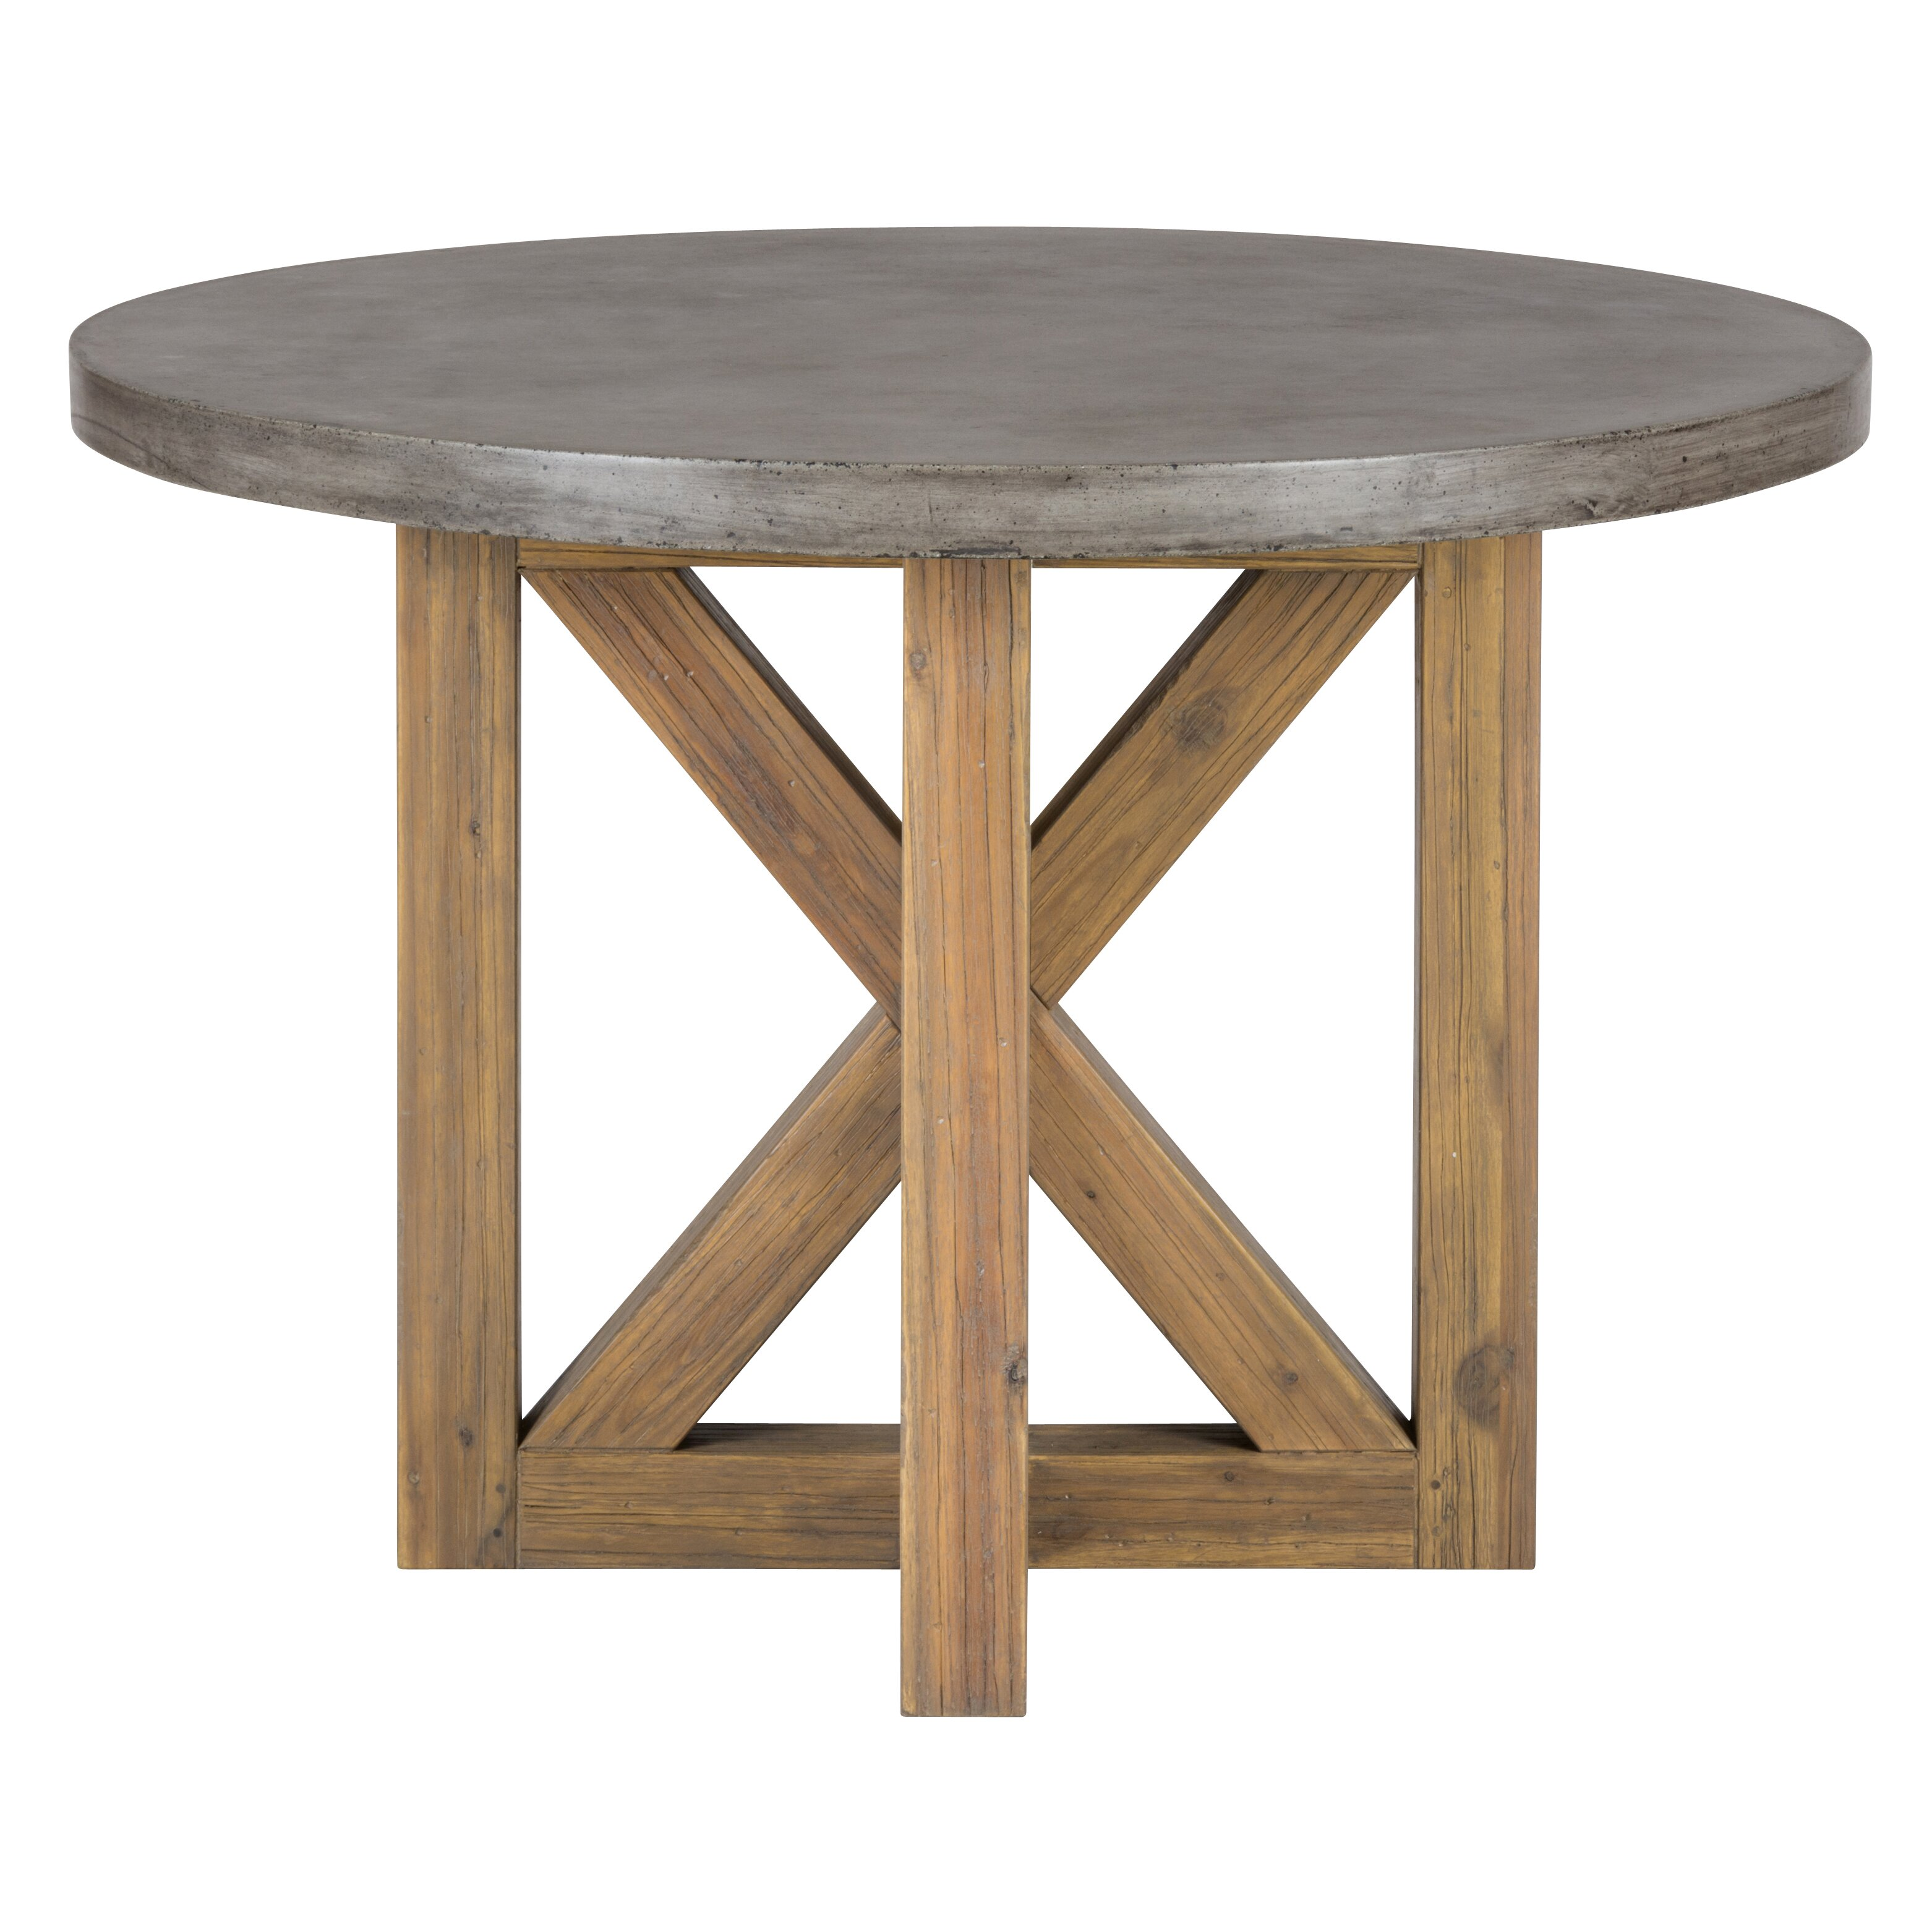 Jofran boulder ridge dining table reviews for Wayfair dining table